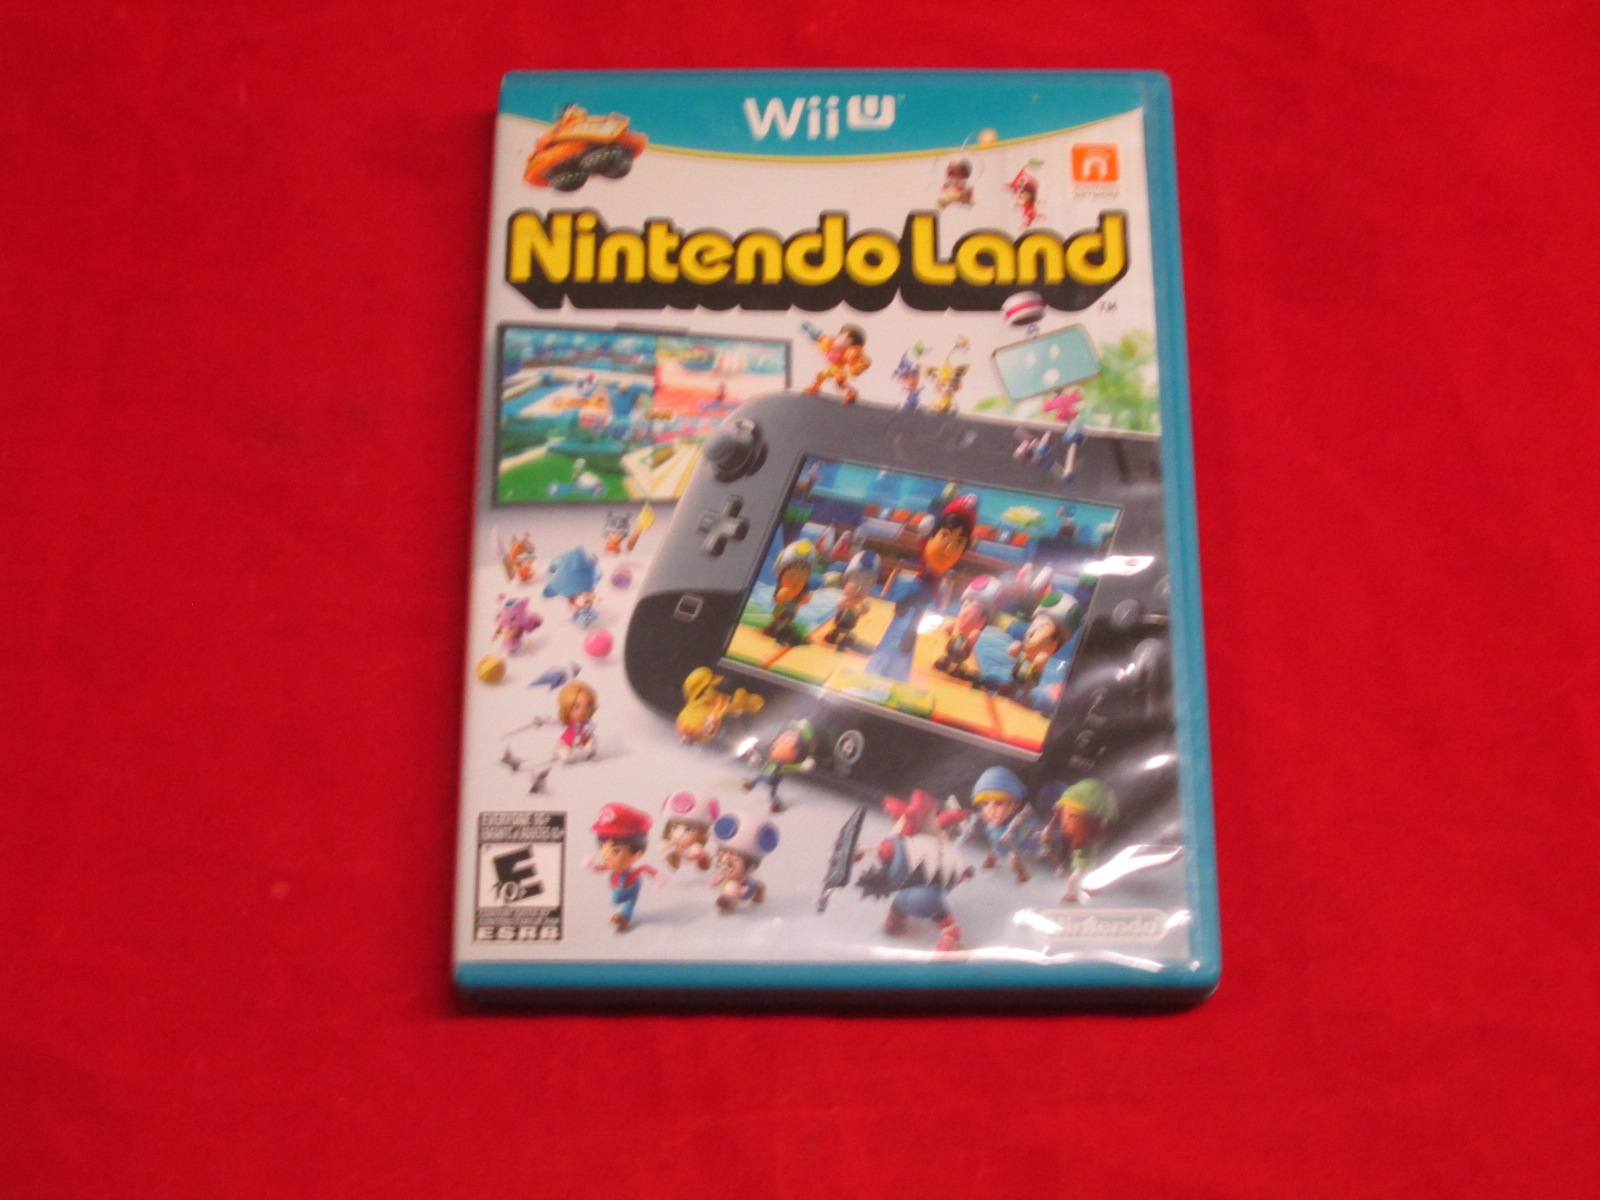 Nintendoland For Wii U With Manual and Case